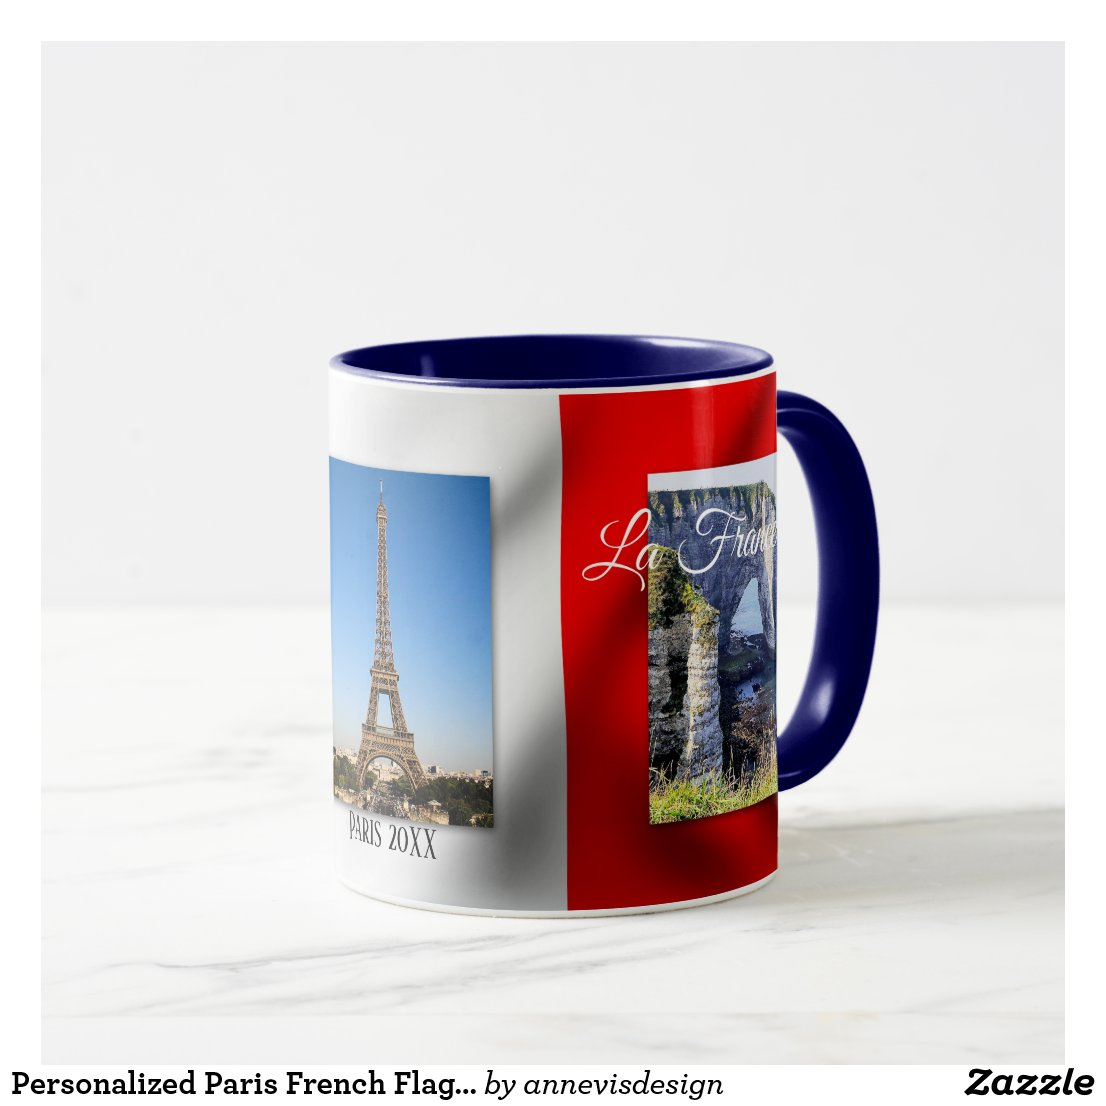 Personalized Paris French Flag Photo Mug